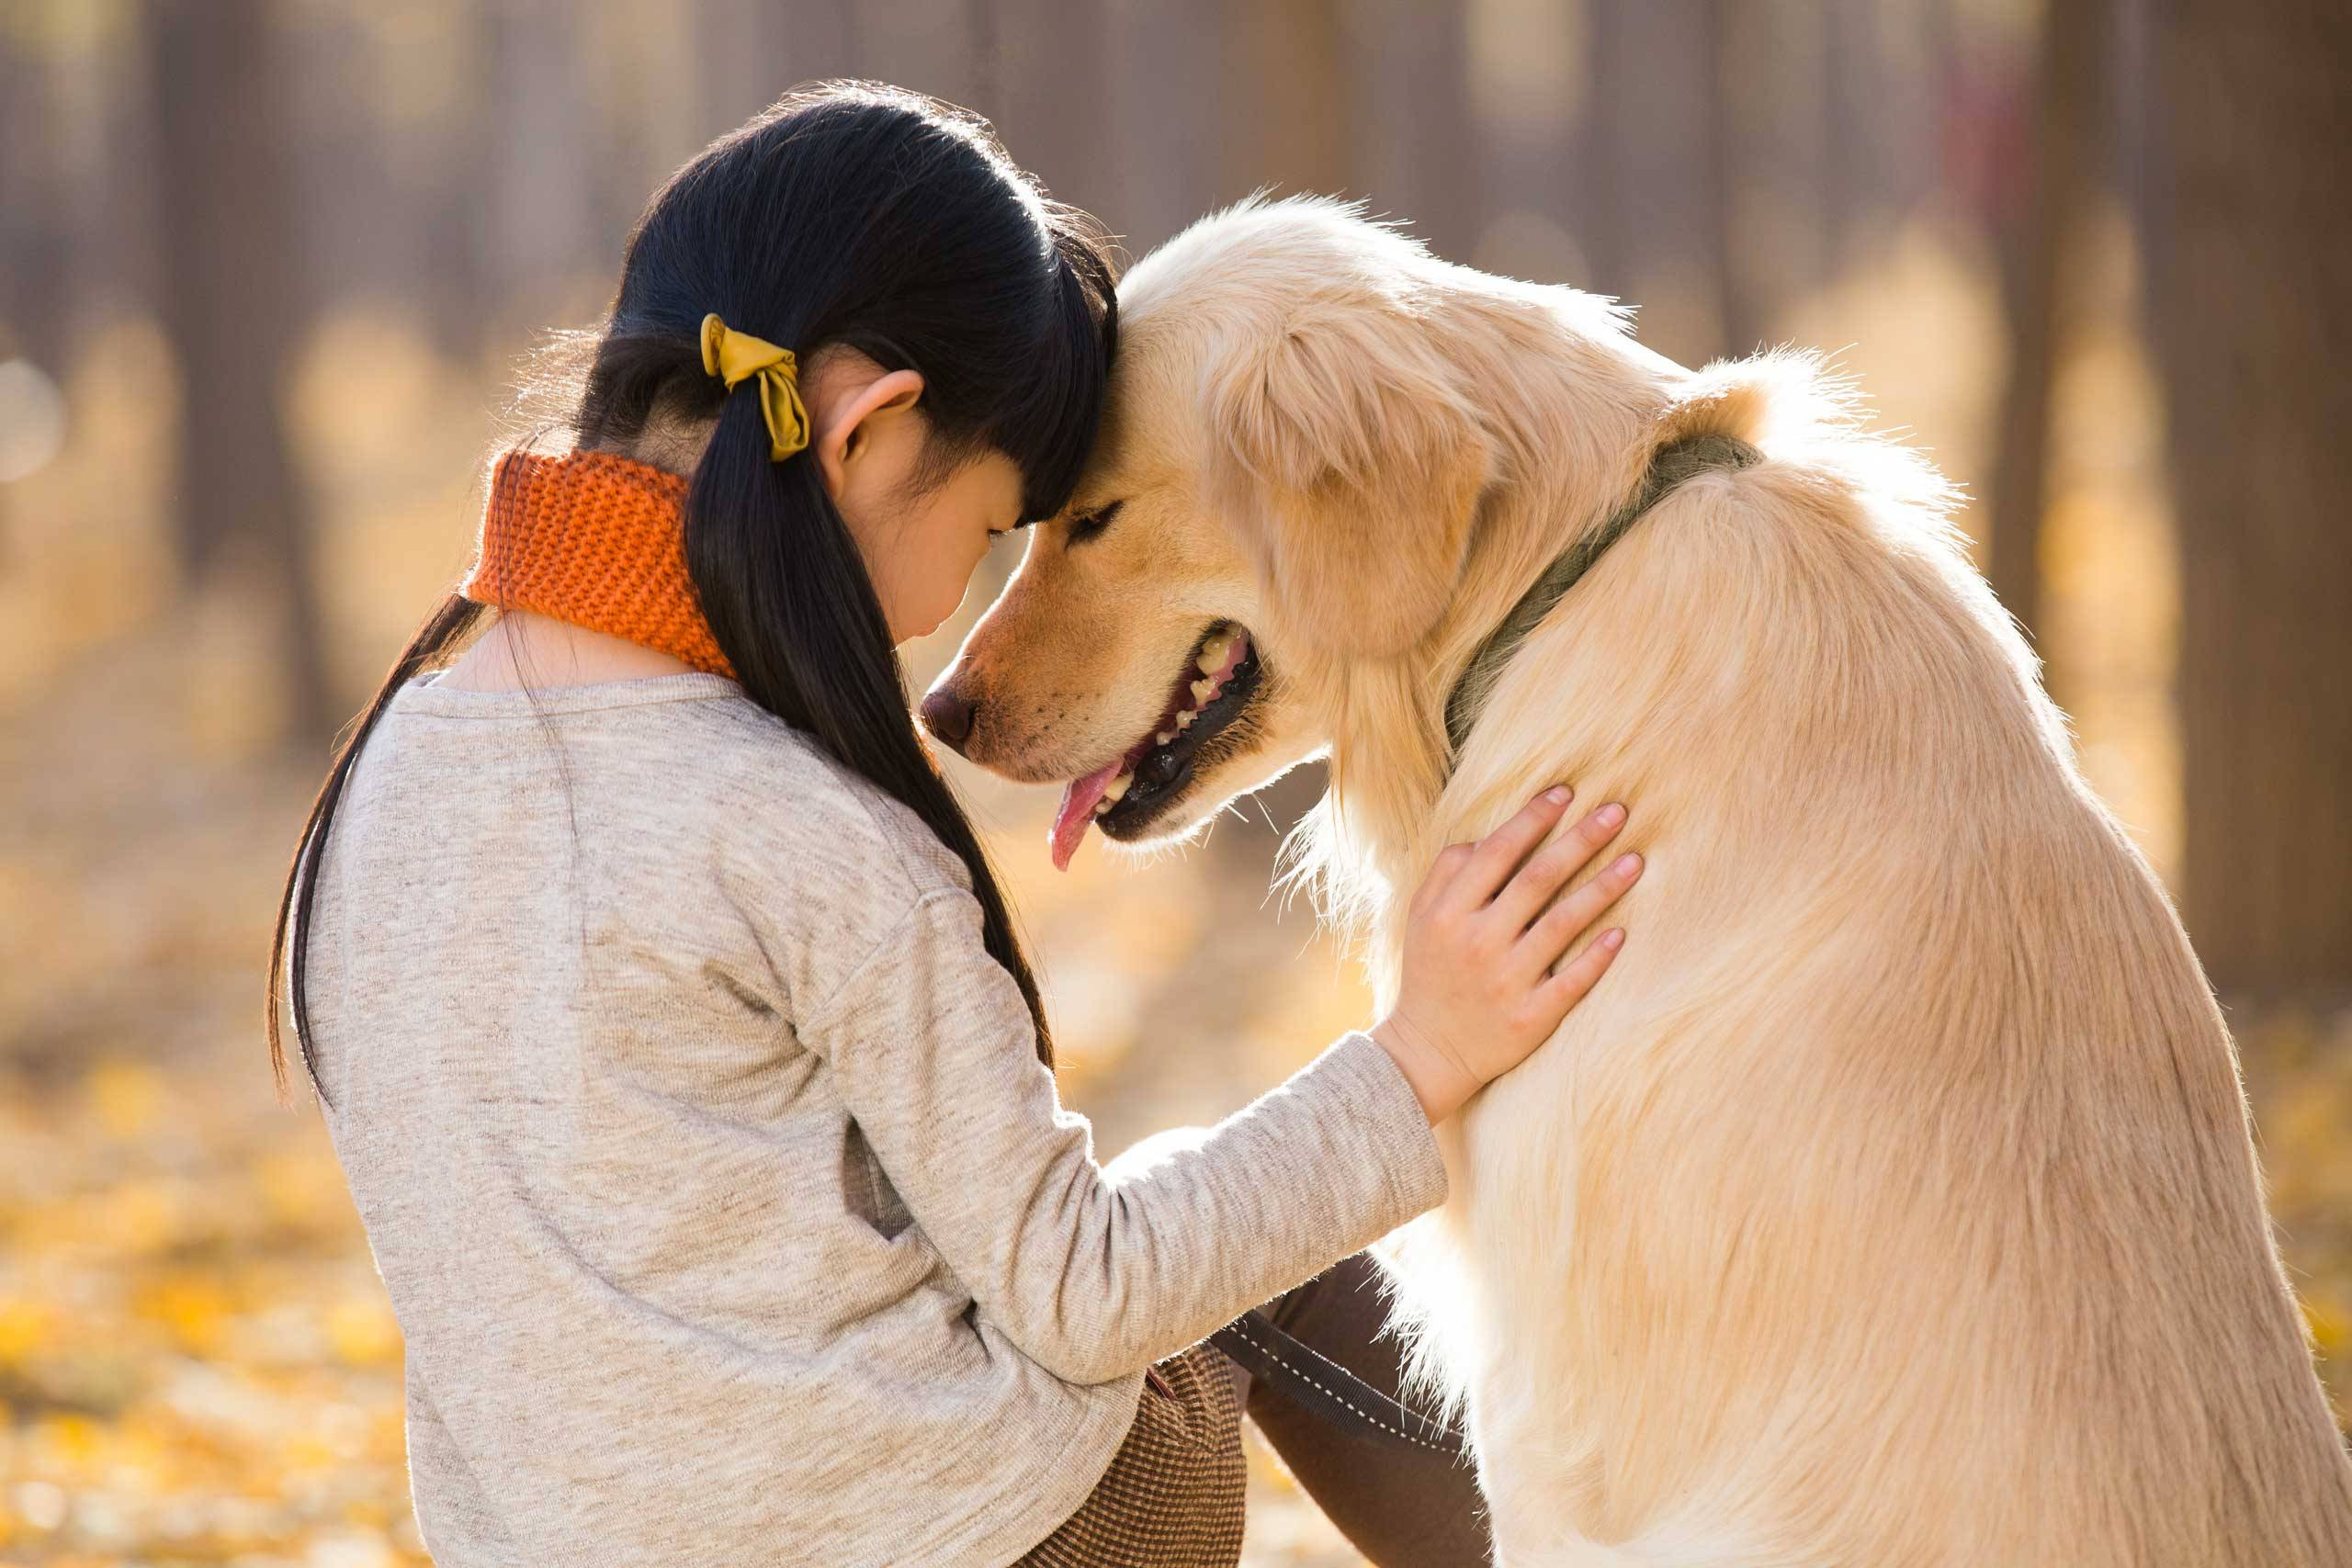 humans and animals relationships Psychological relationship between humans and animals whether its social, business, or personal, animals play an extremely important role in the lives of humans humans have been using animals to survive since before 100 bc.